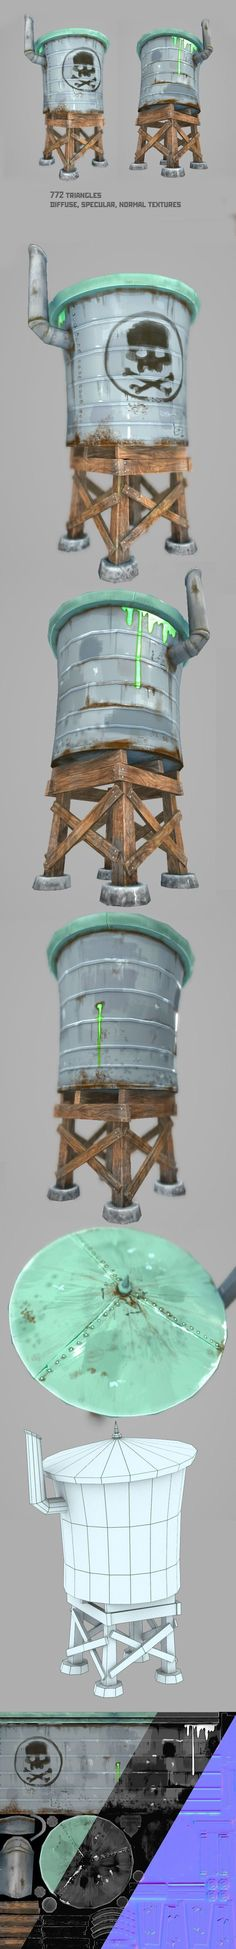 Water Tower by Denelighte Ready for game lowpoly textured model with optimazed mesh and UV Game Environment, Environment Concept Art, Prop Design, Game Design, 3d Design, 3d Cinema, Polygon Modeling, Low Poly Games, Game Textures